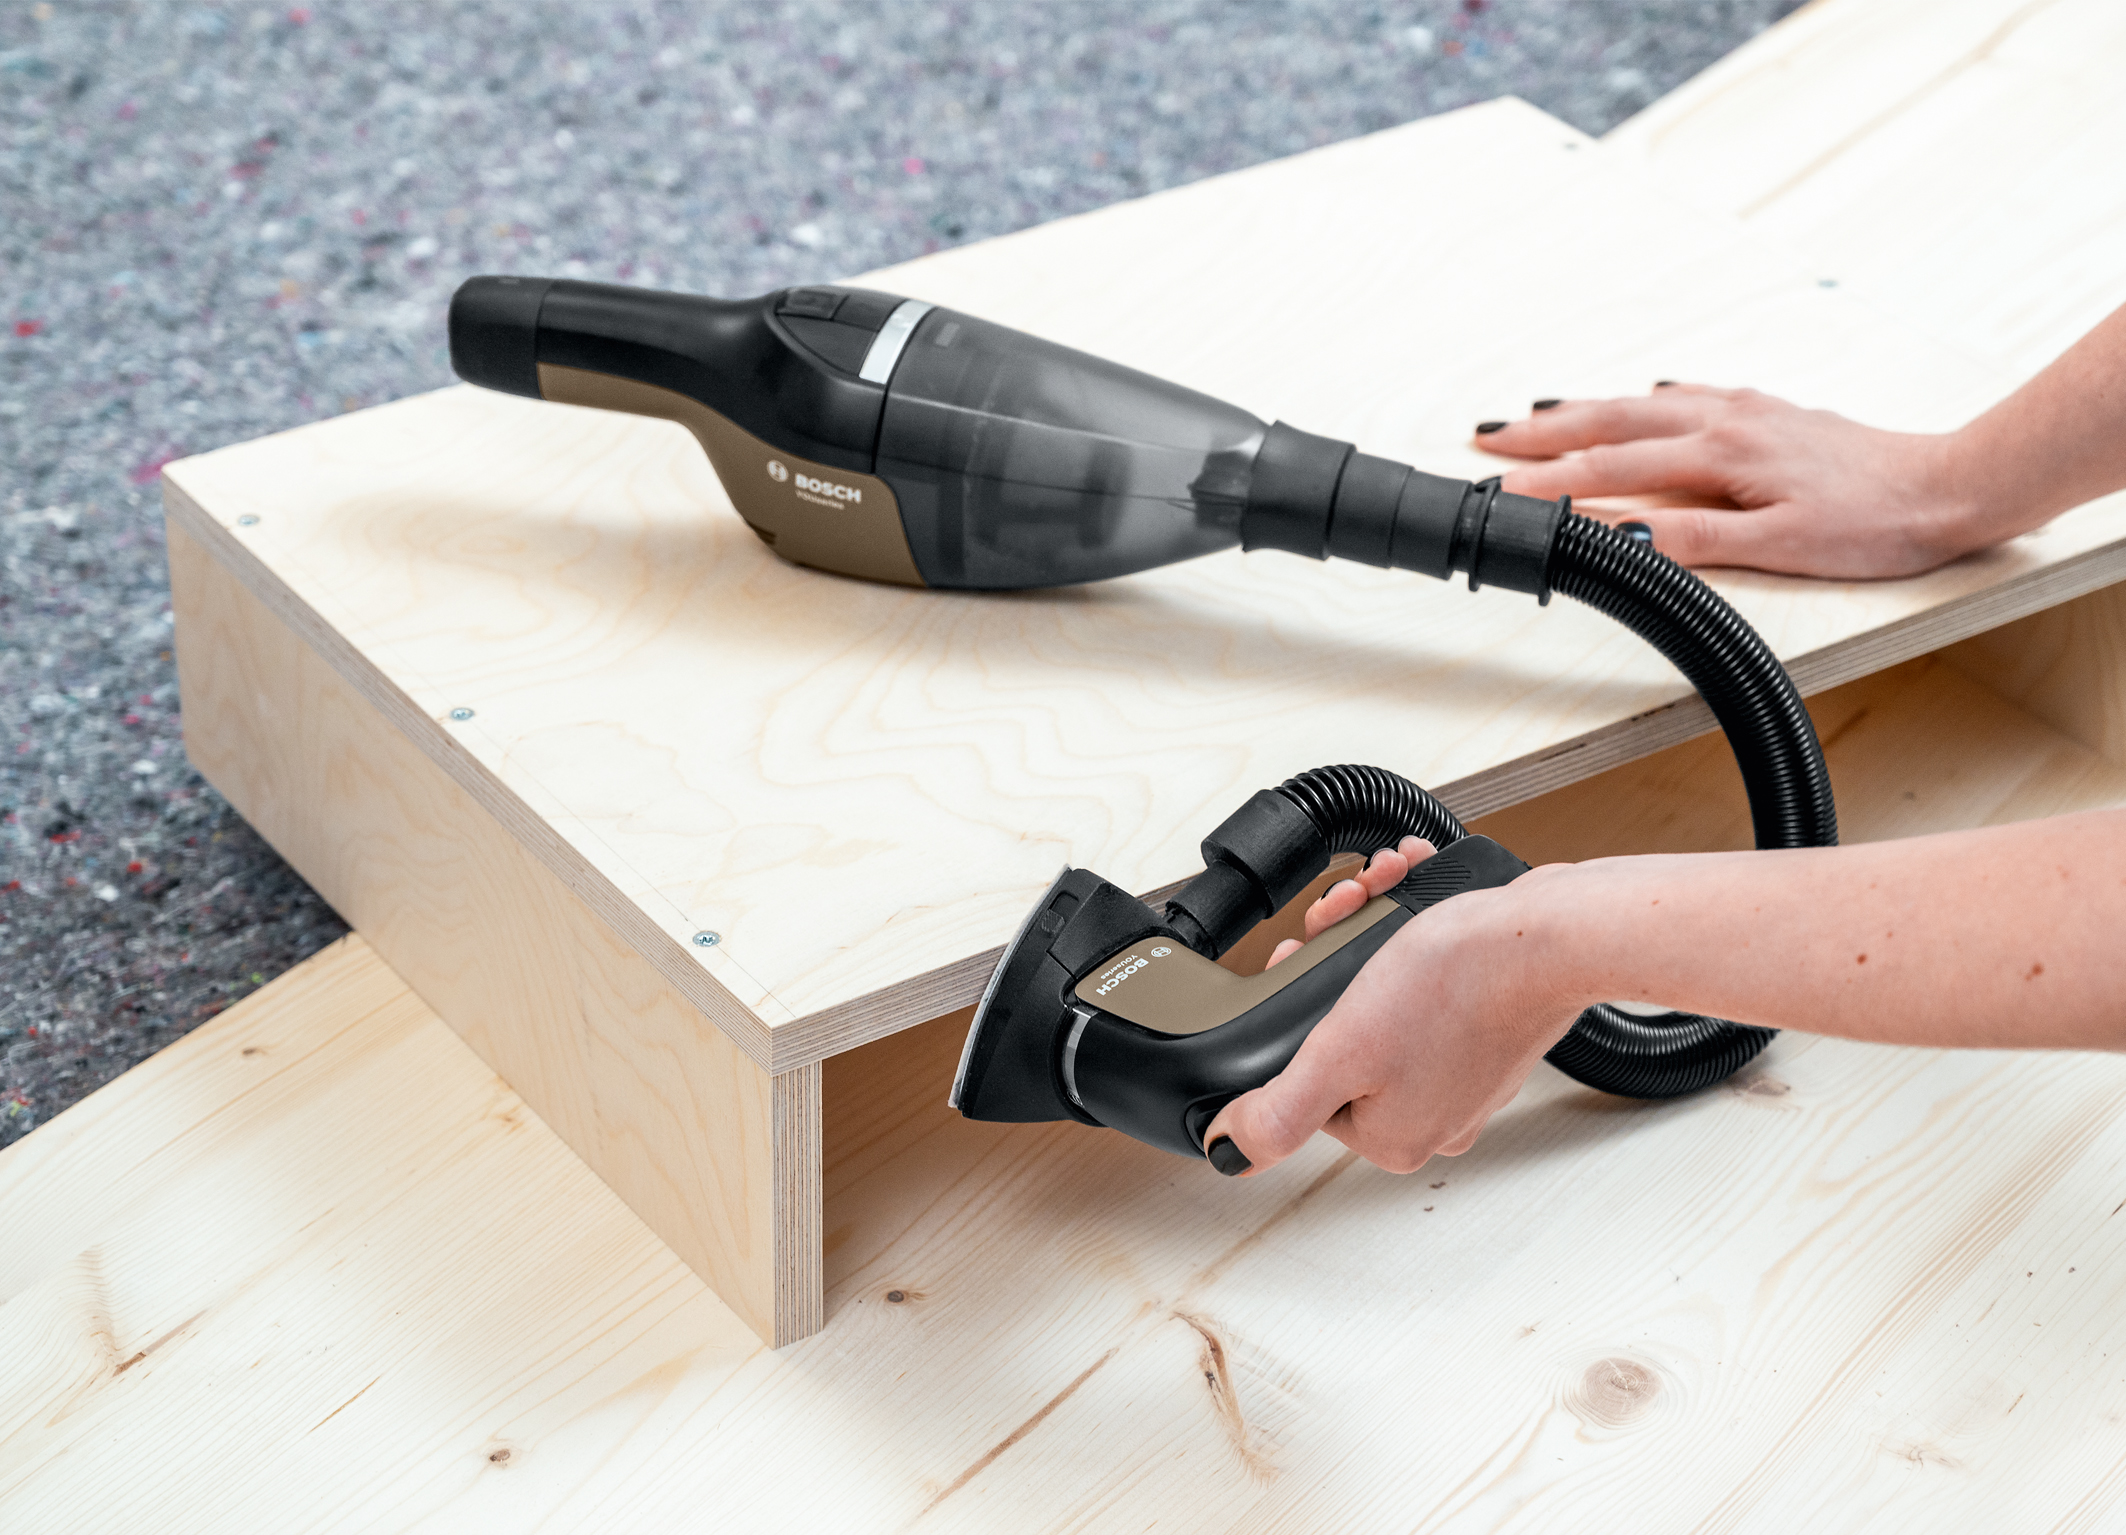 A versatile all-rounder – sanding has never been finer: The cordless multi-sander from the YouSeries